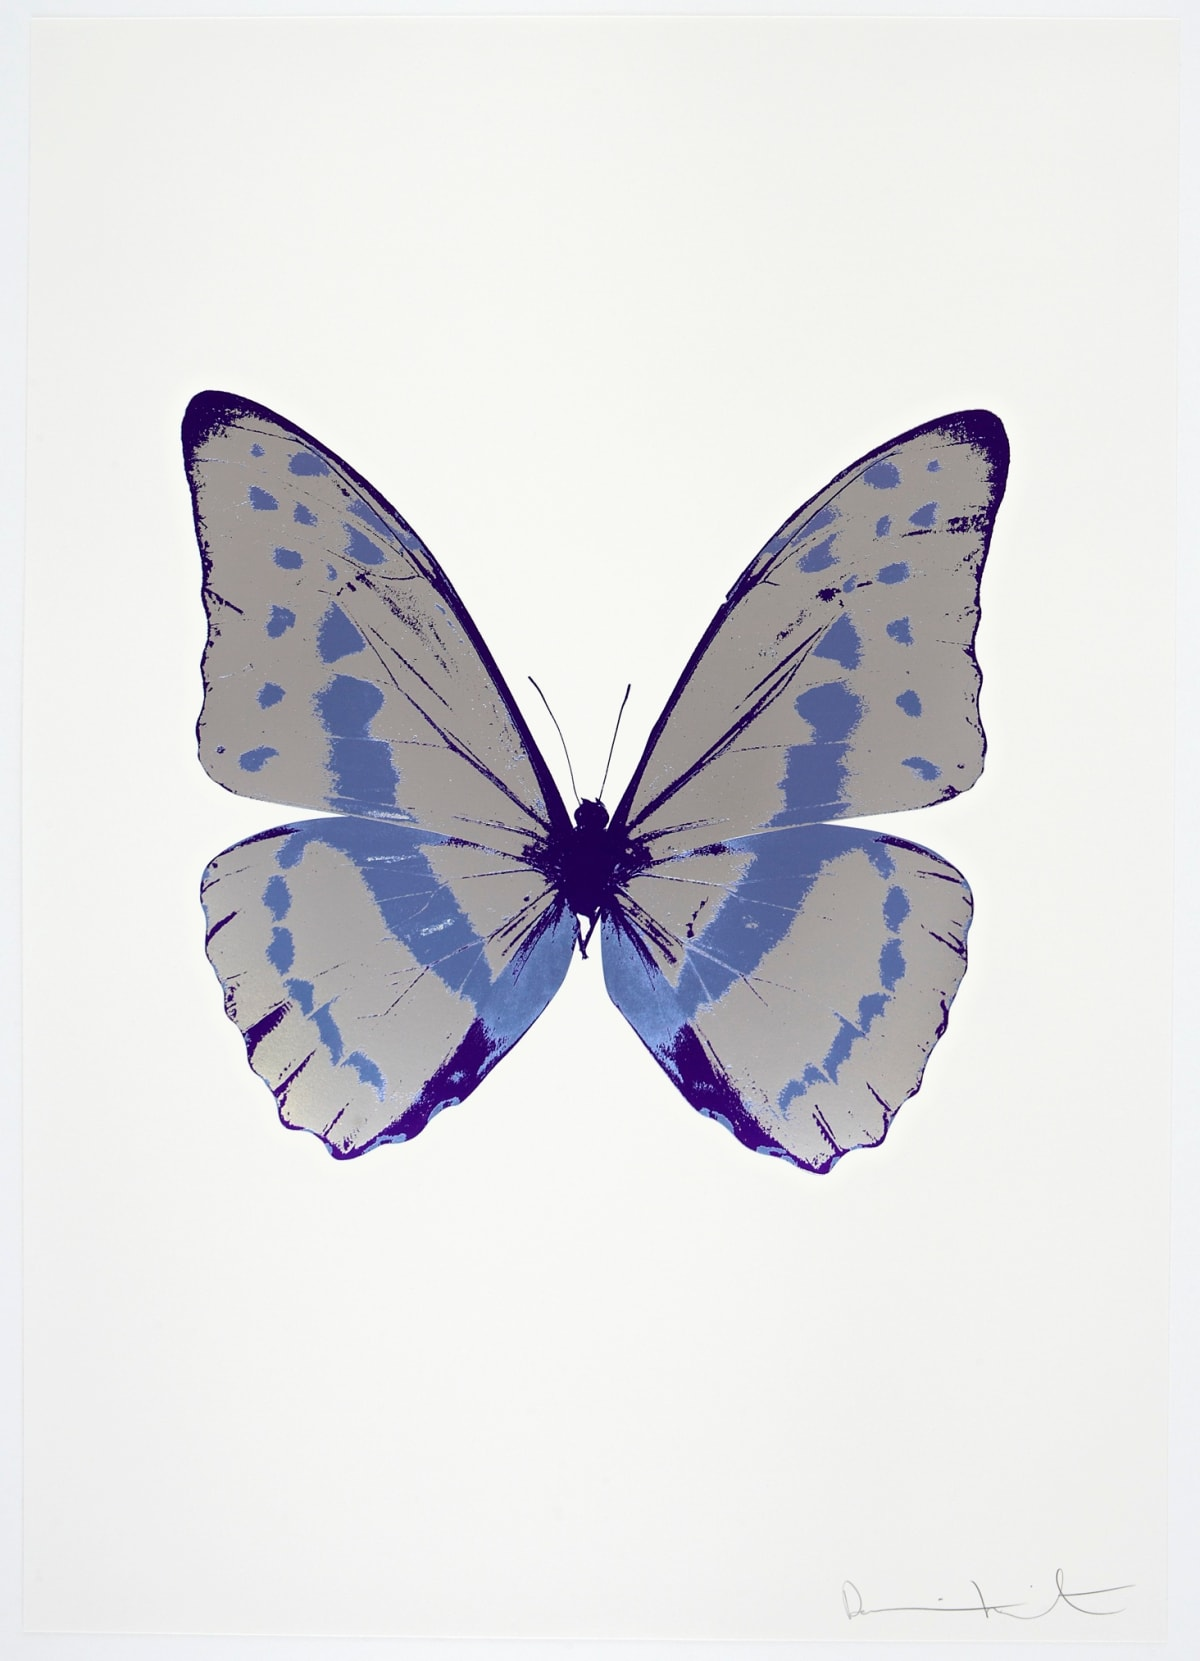 Damien Hirst The Souls III - Silver Gloss/Cornflower Blue/Imperial Purple, 2010 3 colour foil block on 300gsm Arches 88 archival paper. Signed and numbered. Published by Paul Stolper and Other Criteria 72 x 51cm OC7908 / 660-11 Edition of 15